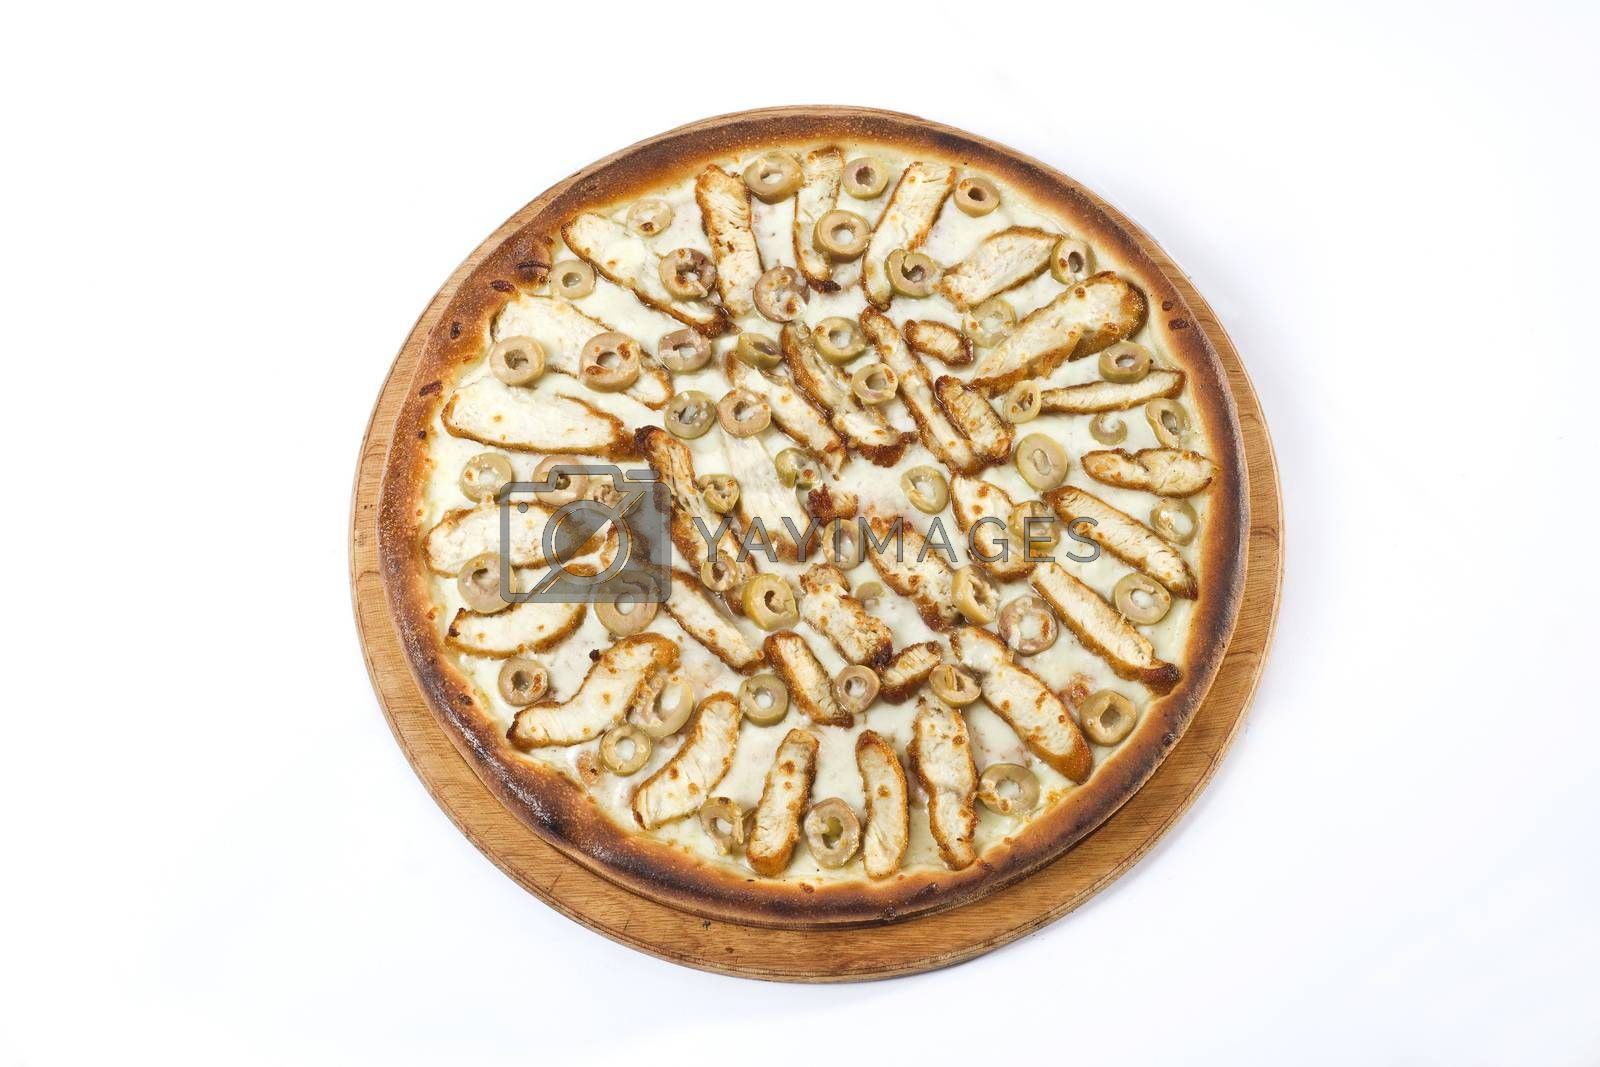 Royalty free image of pizza by emirkoo